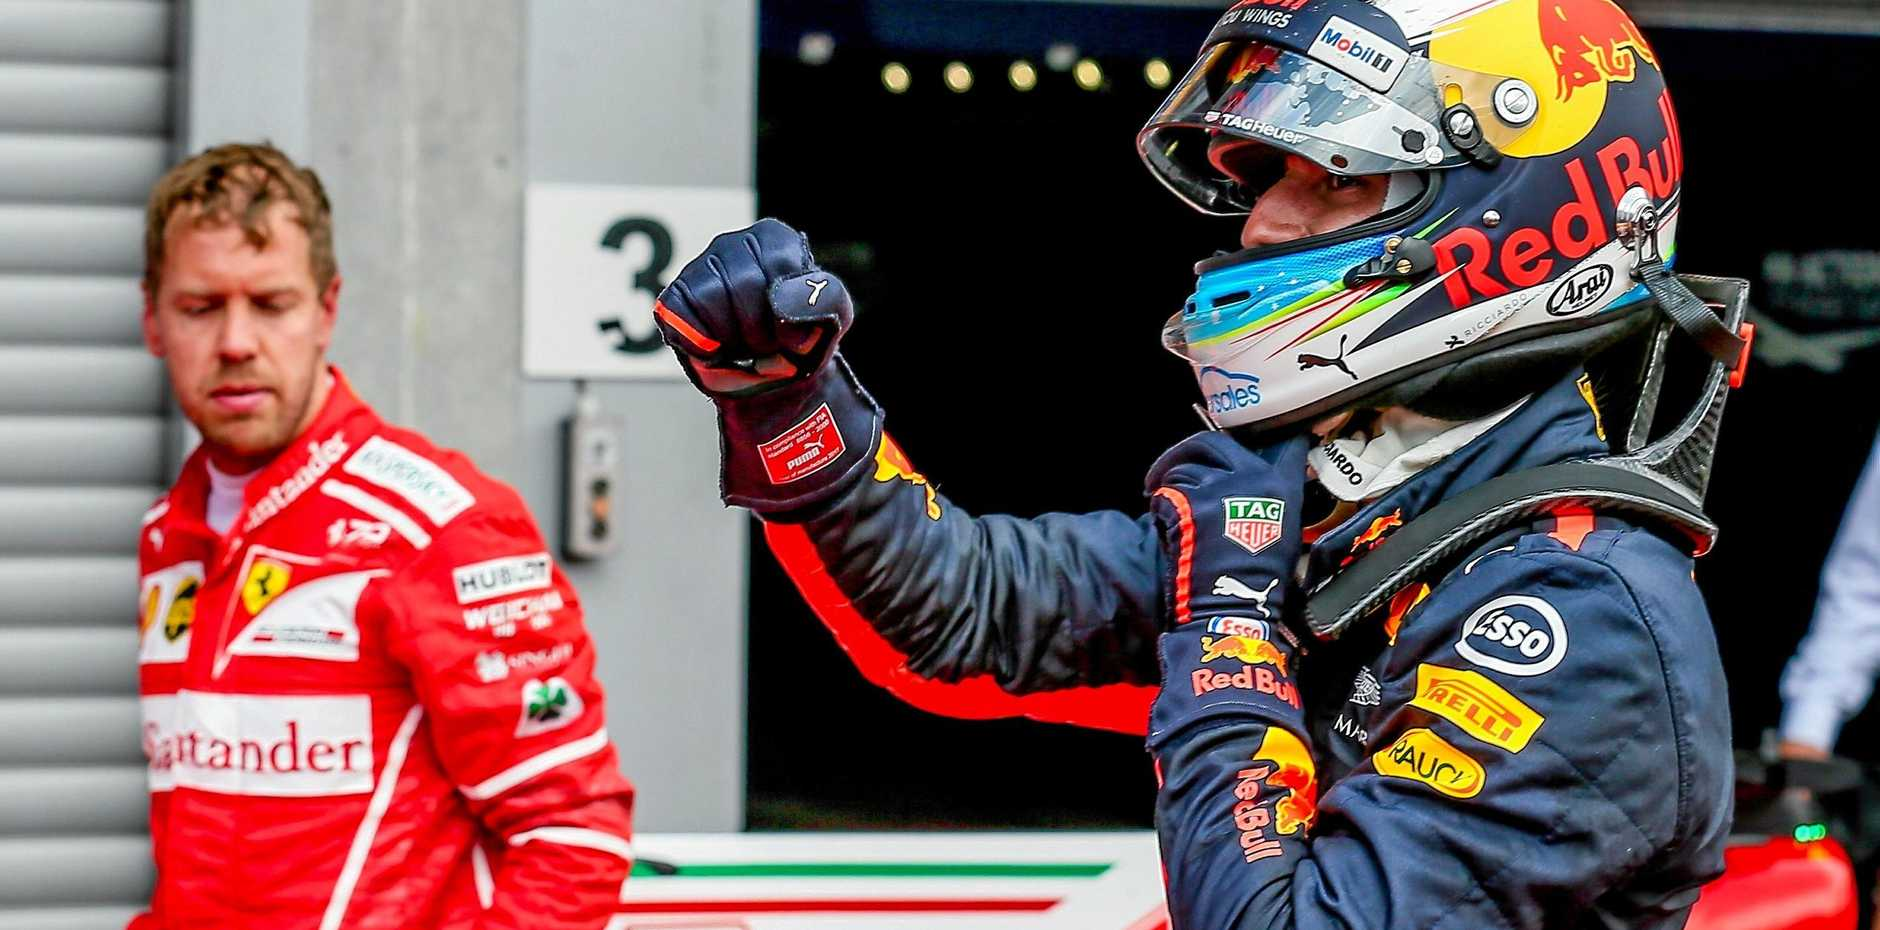 Daniel Ricciardo reacts after he finished third in the Belgium Formula One Grand Prix